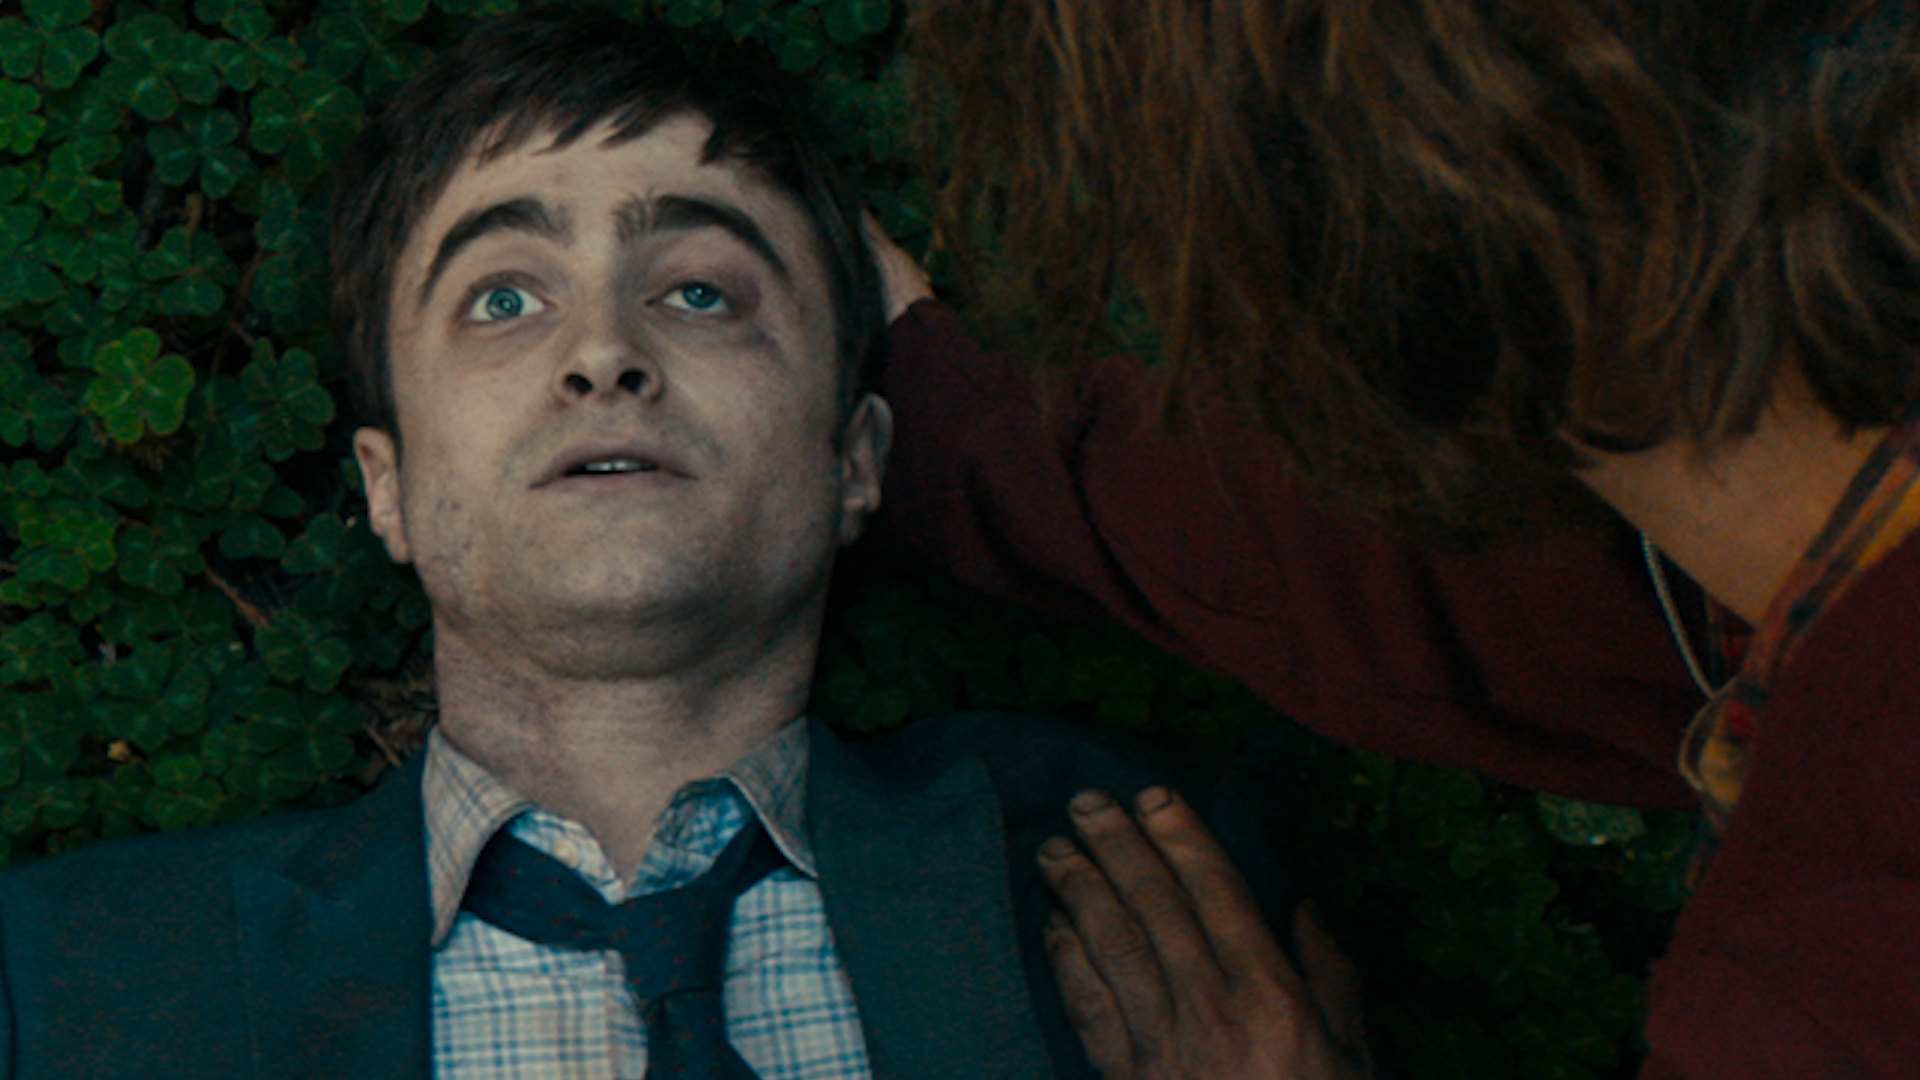 about army man